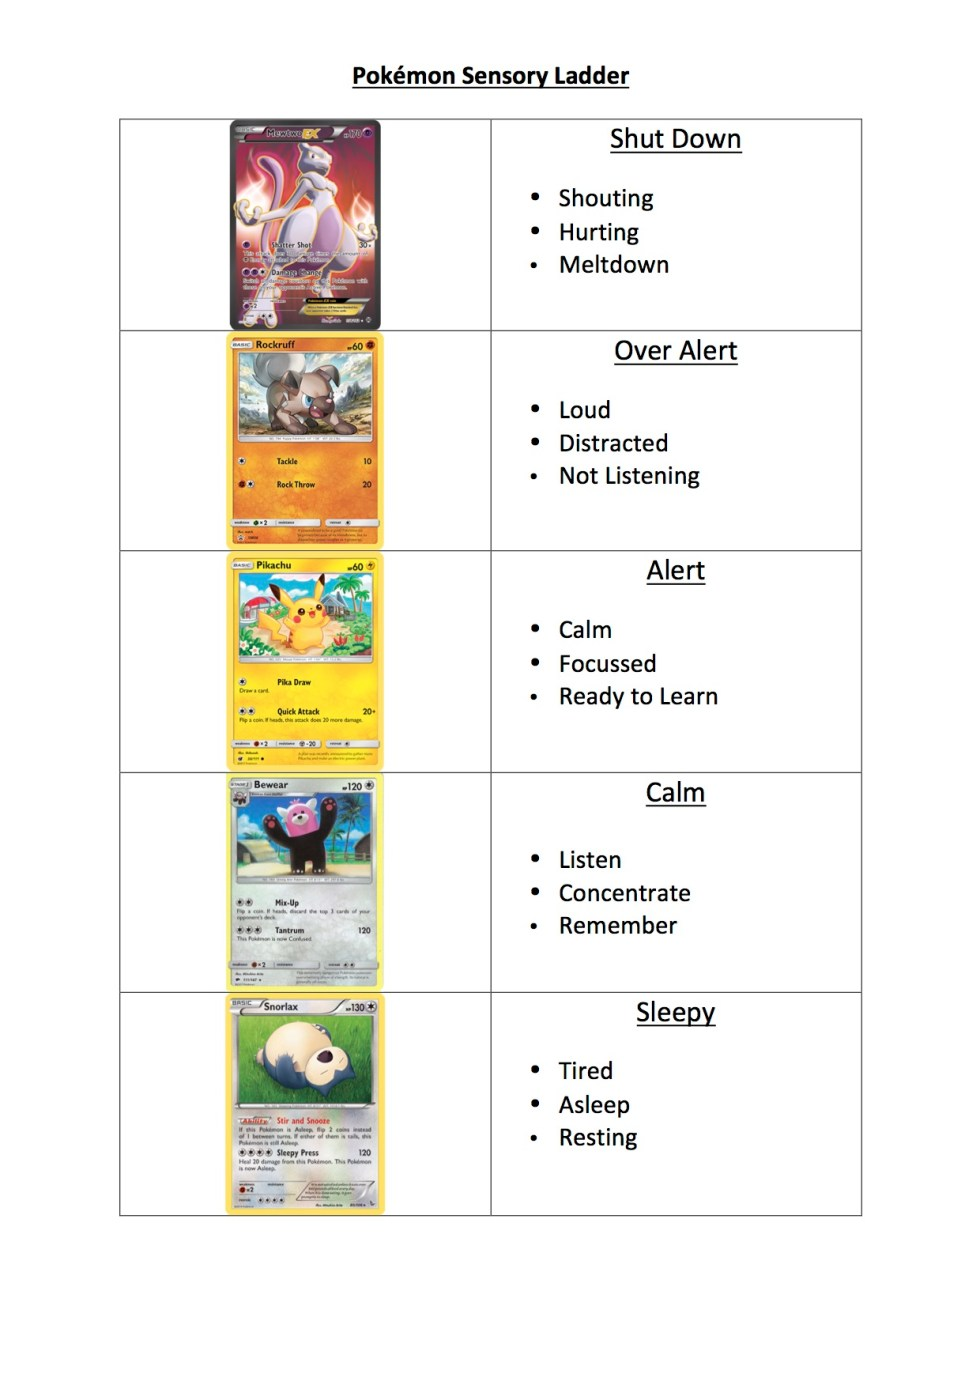 Pokemon Sensory Ladder copy